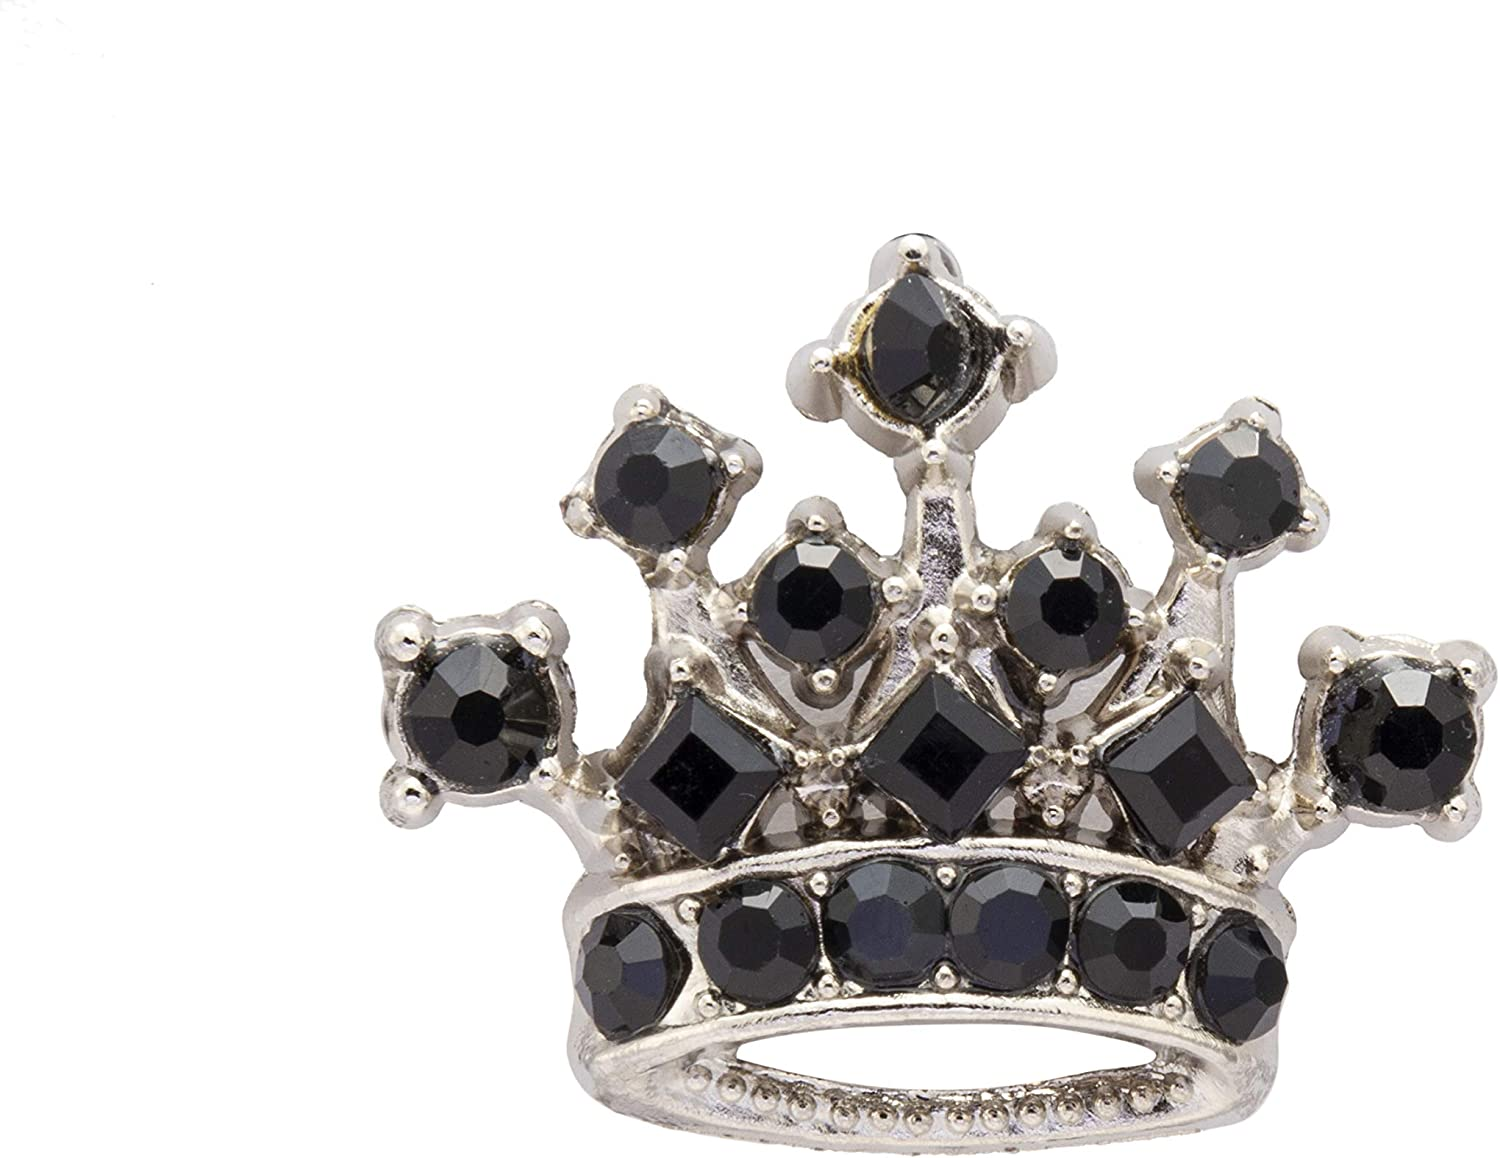 Knighthood Men's Royal Crown Crystal Lapel Pin Badge Brooch (Black & Silver)